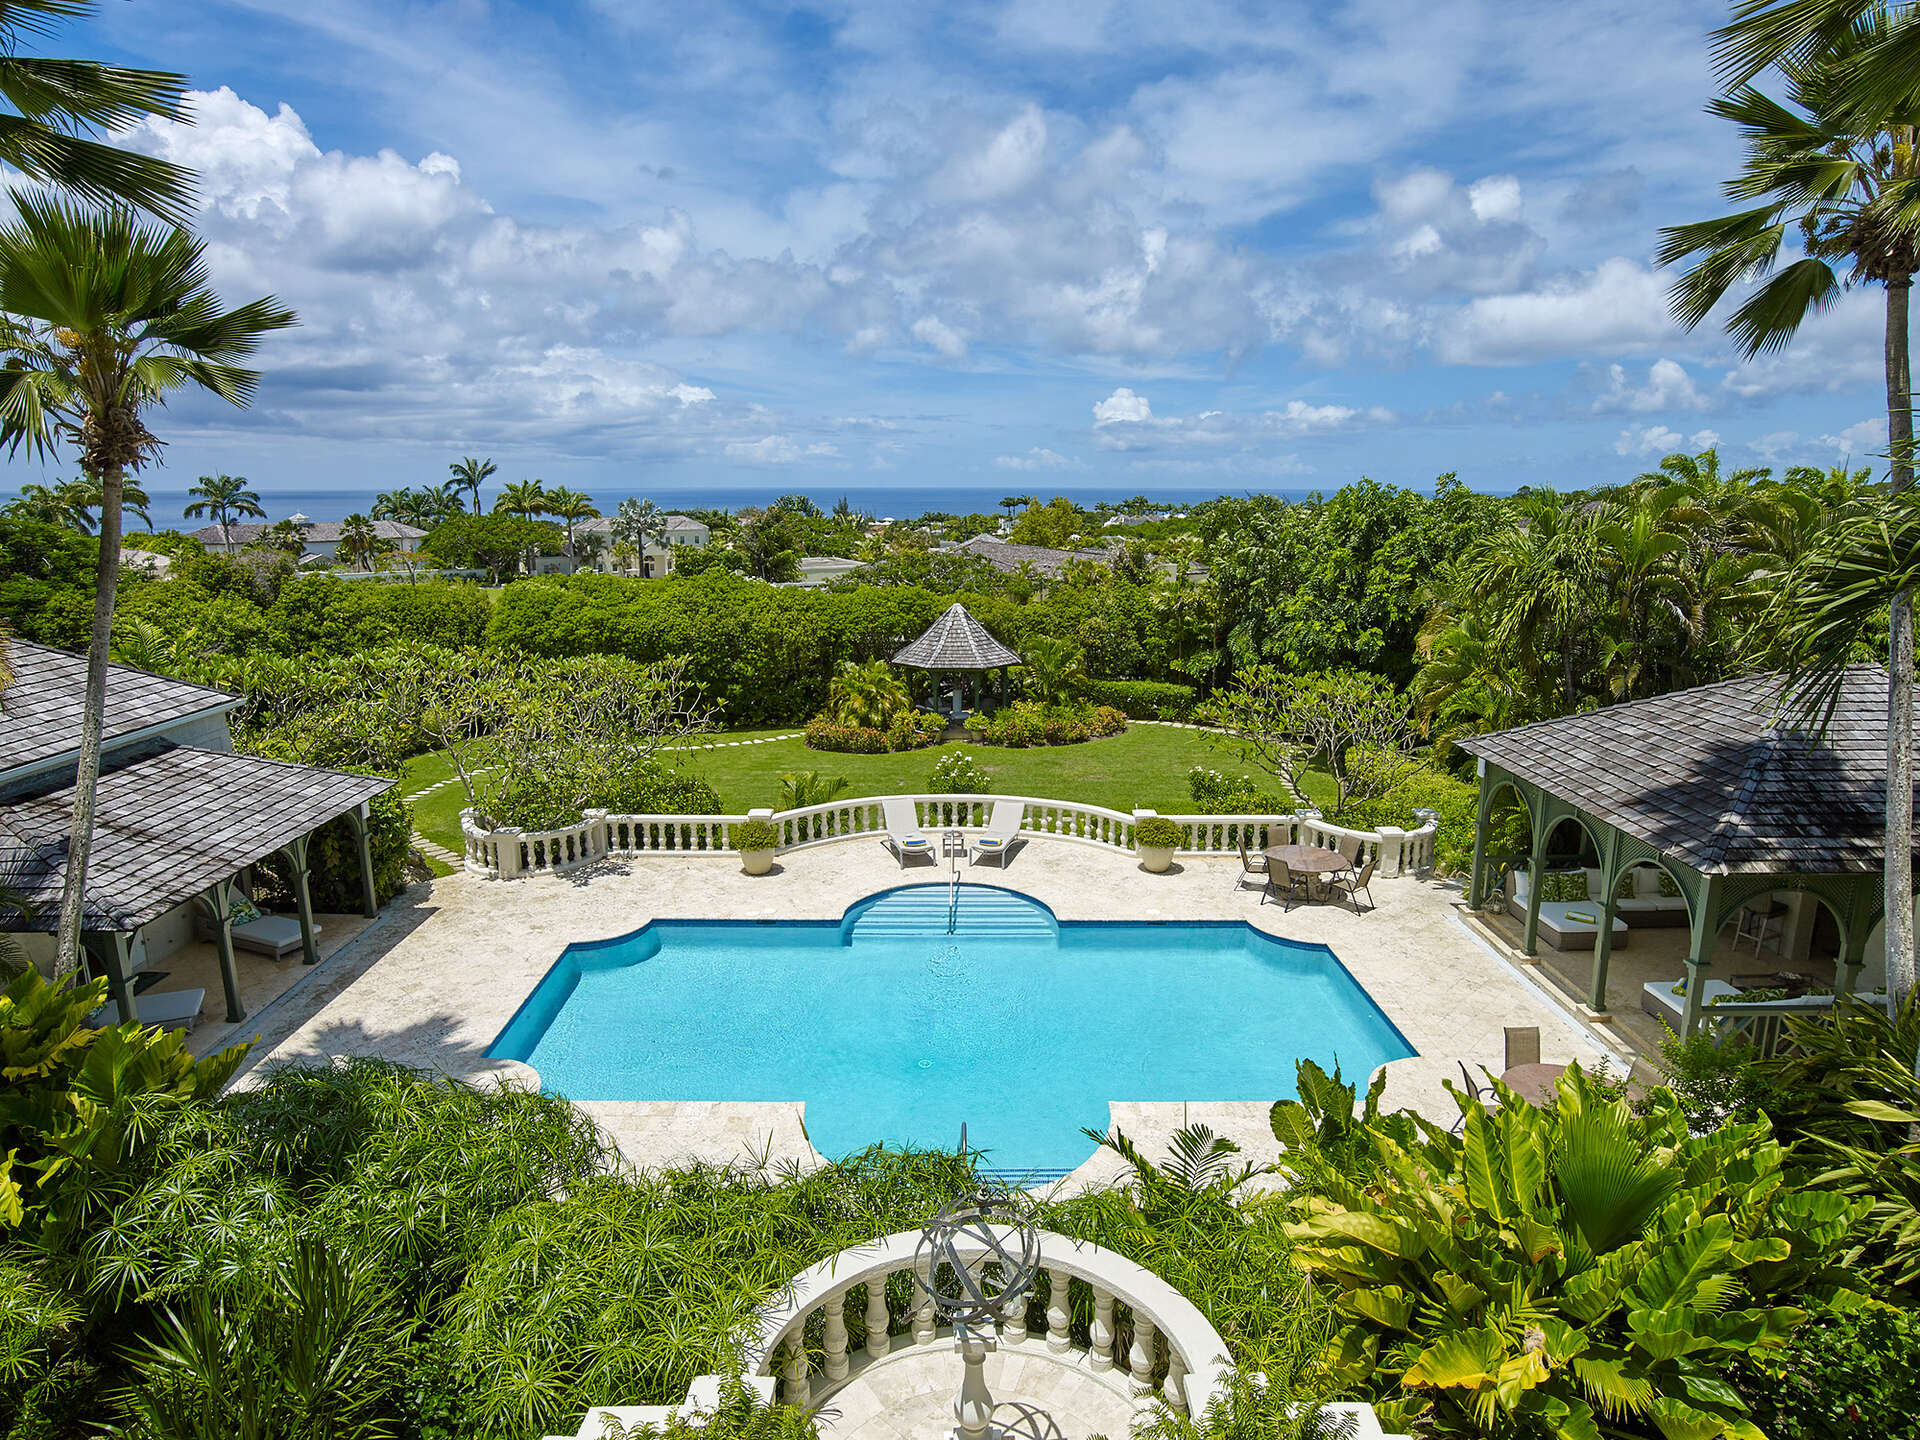 Luxury villa rentals caribbean - Barbados - St james - Royal westmoreland golf resort - Bajan Heights - Image 1/21